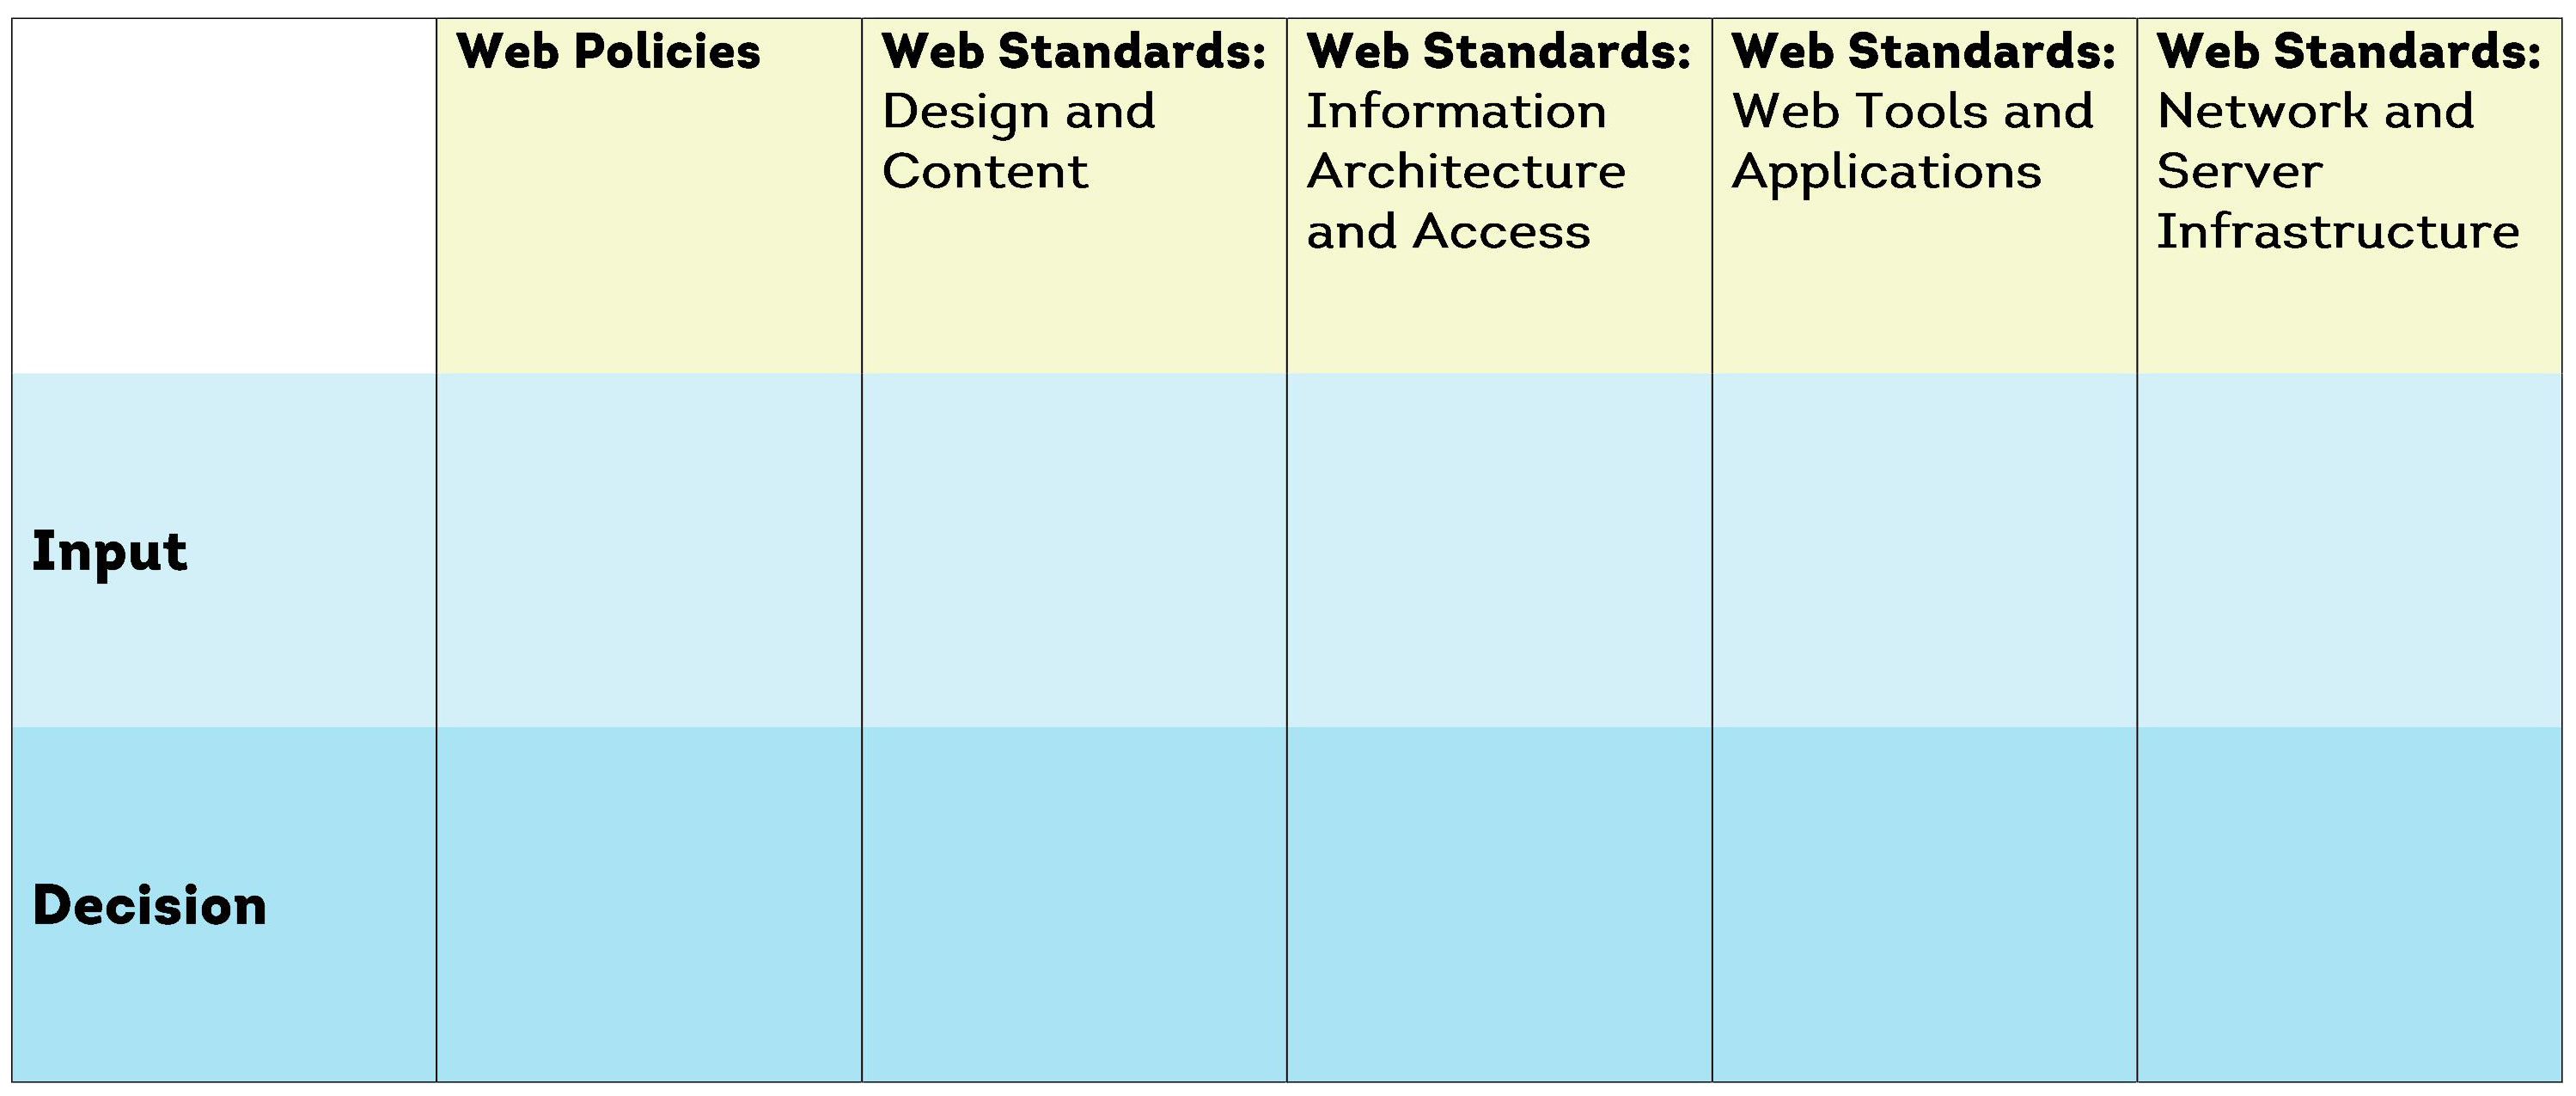 Image of a web governance table with the columns Web Policies and Web Standards and the rows Input and Decision.